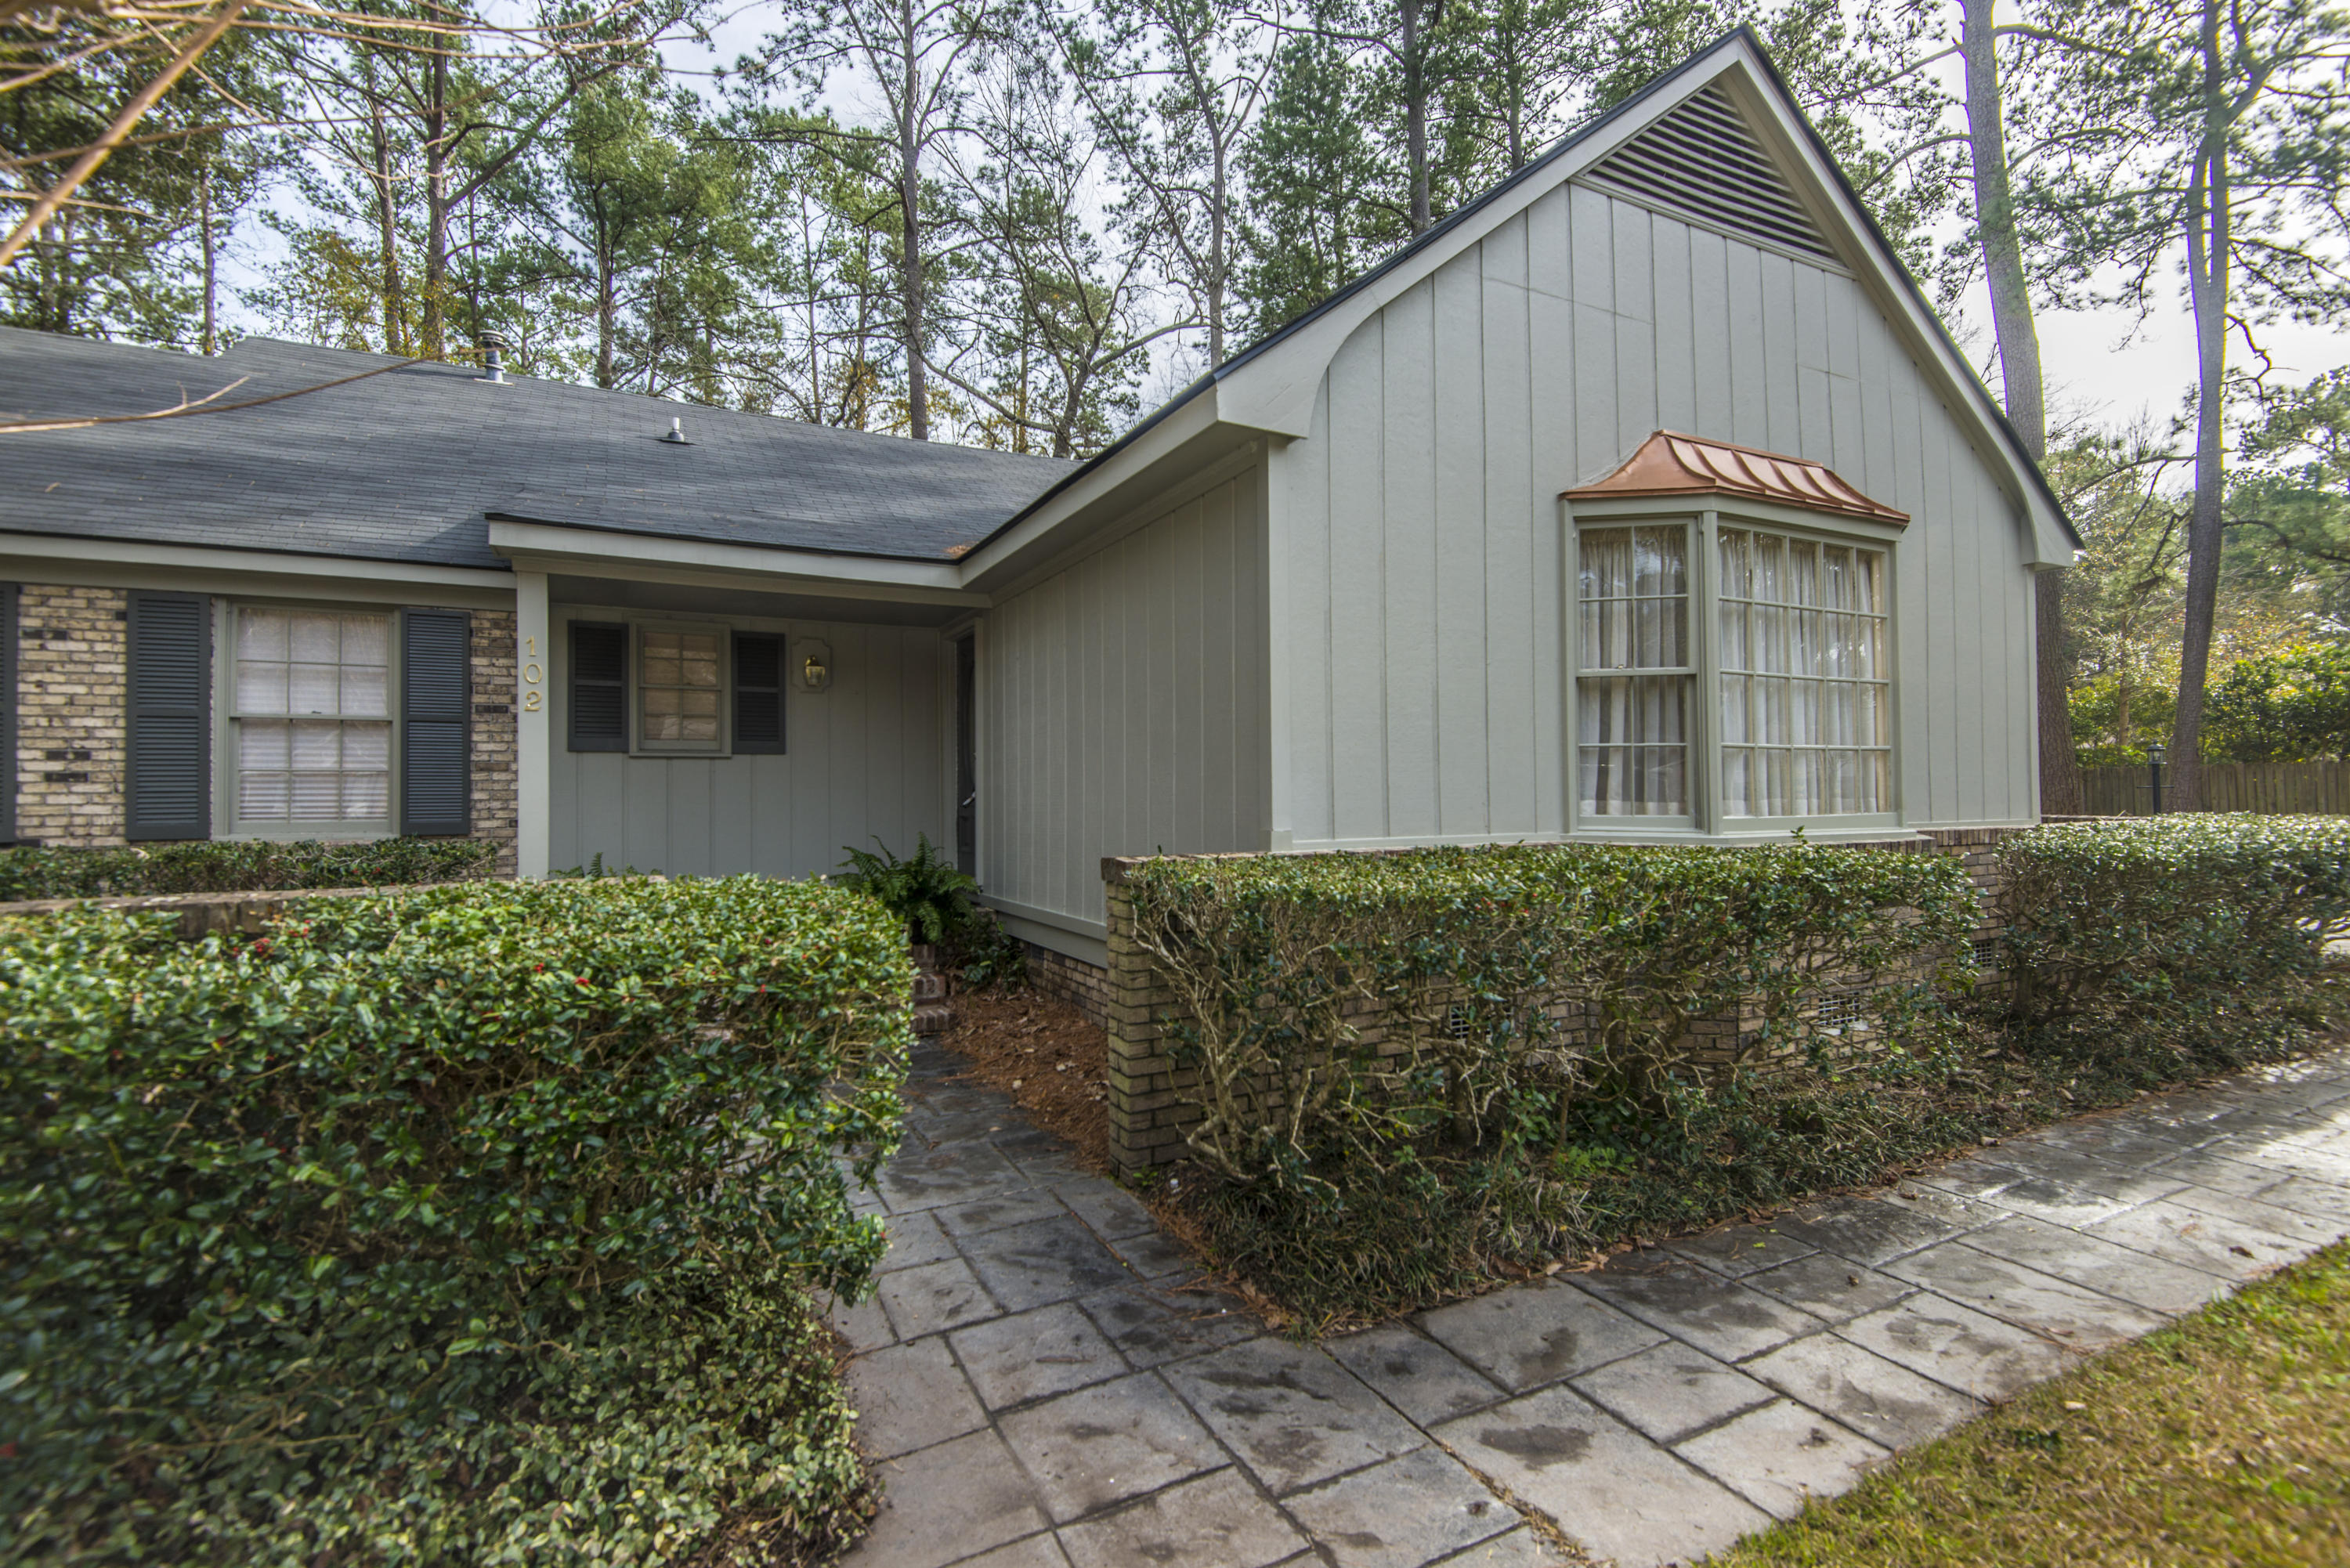 Kings Grant Homes For Sale - 102 Candlewood, Summerville, SC - 13